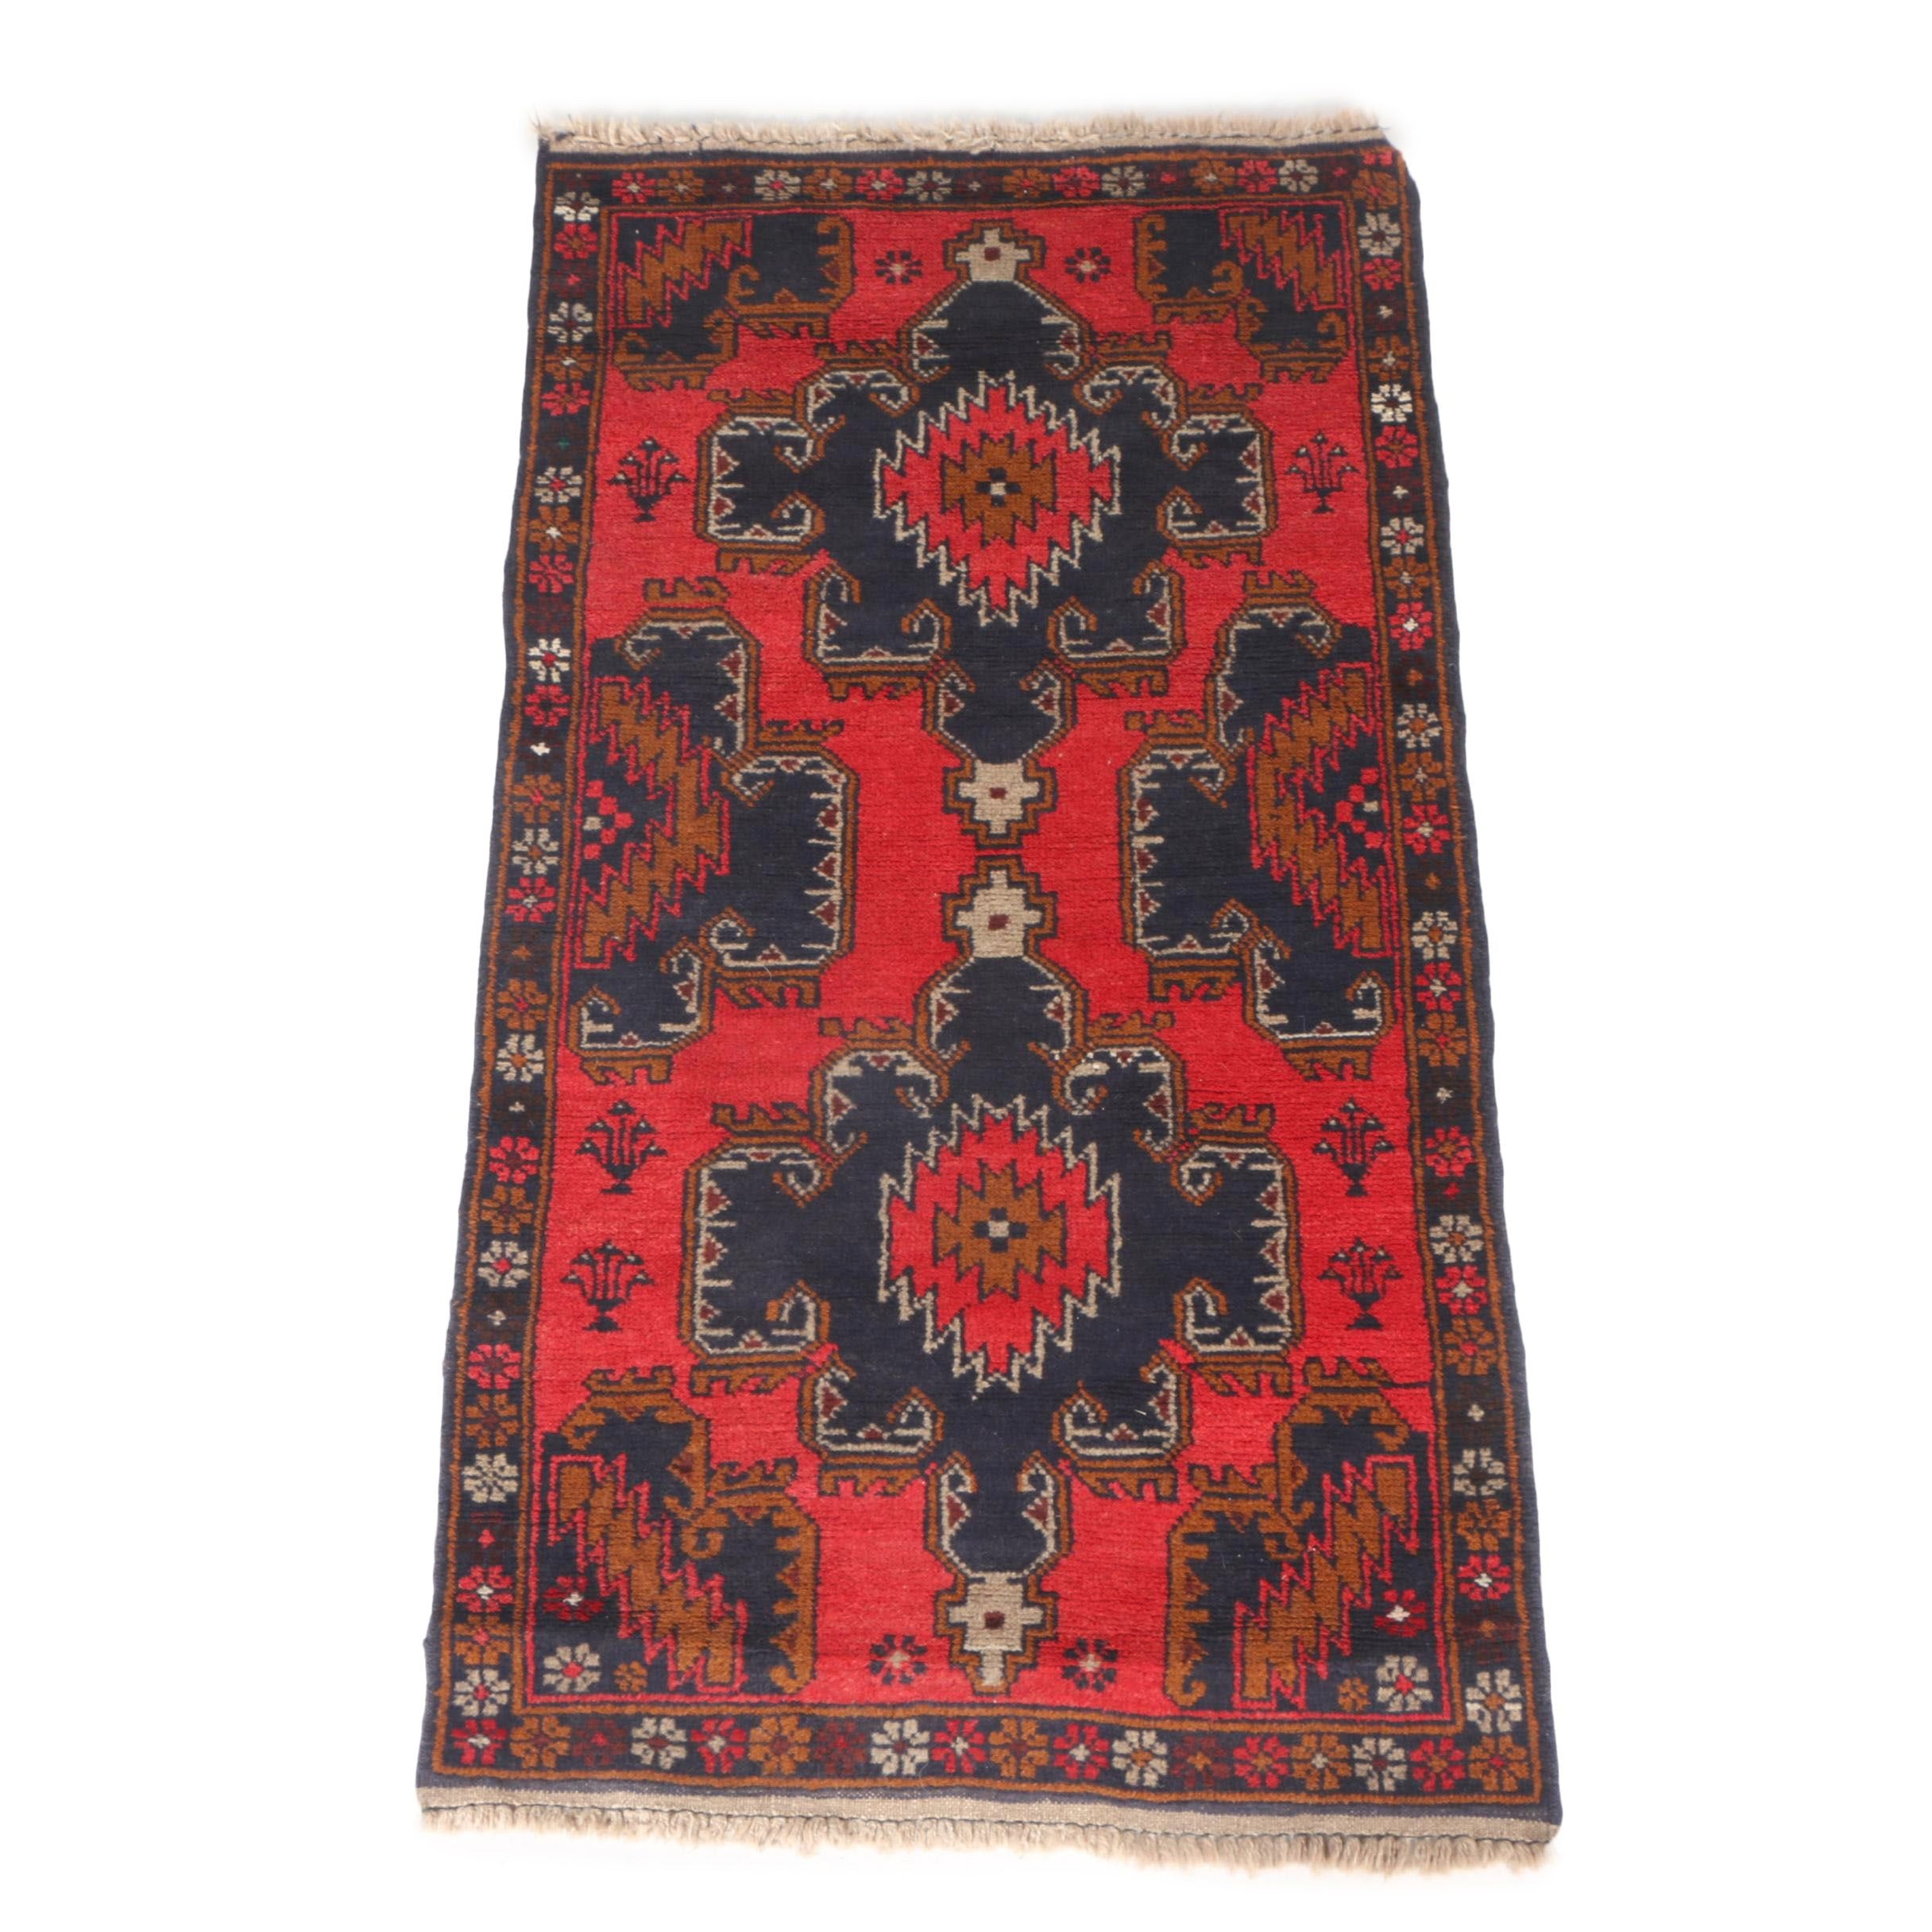 Hand-Knotted Central Anatolian Area Rug